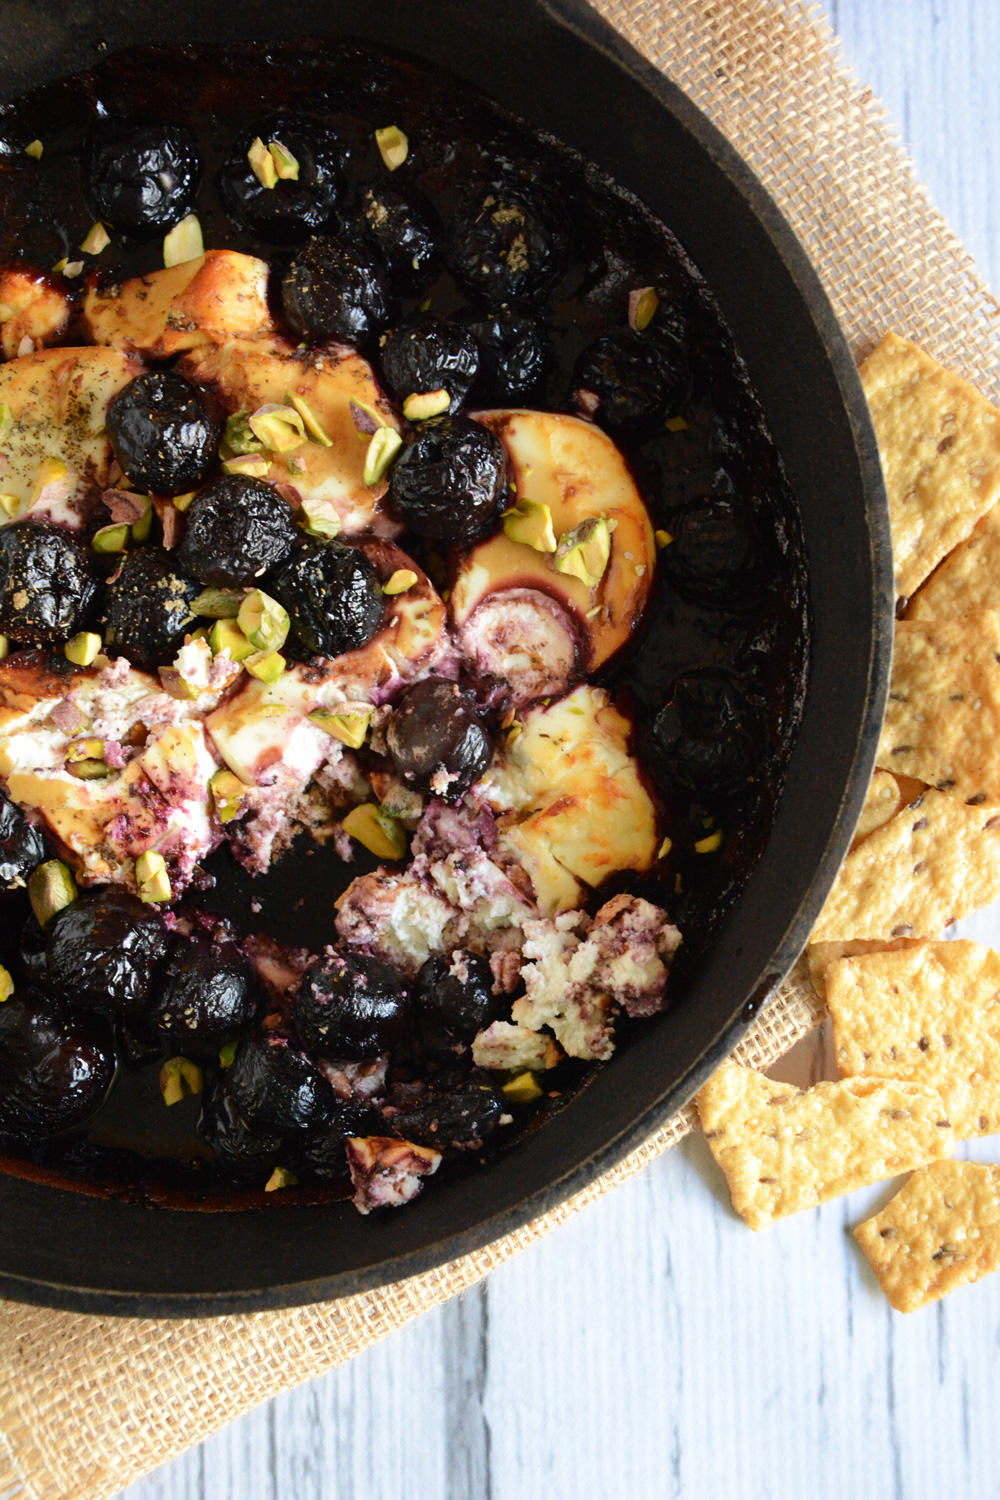 A simple fundido style appetizer with creamy goat cheese, tart cherries, balsamic drizzle, honey and pistachios that will go from oven to table in a matter of minutes!